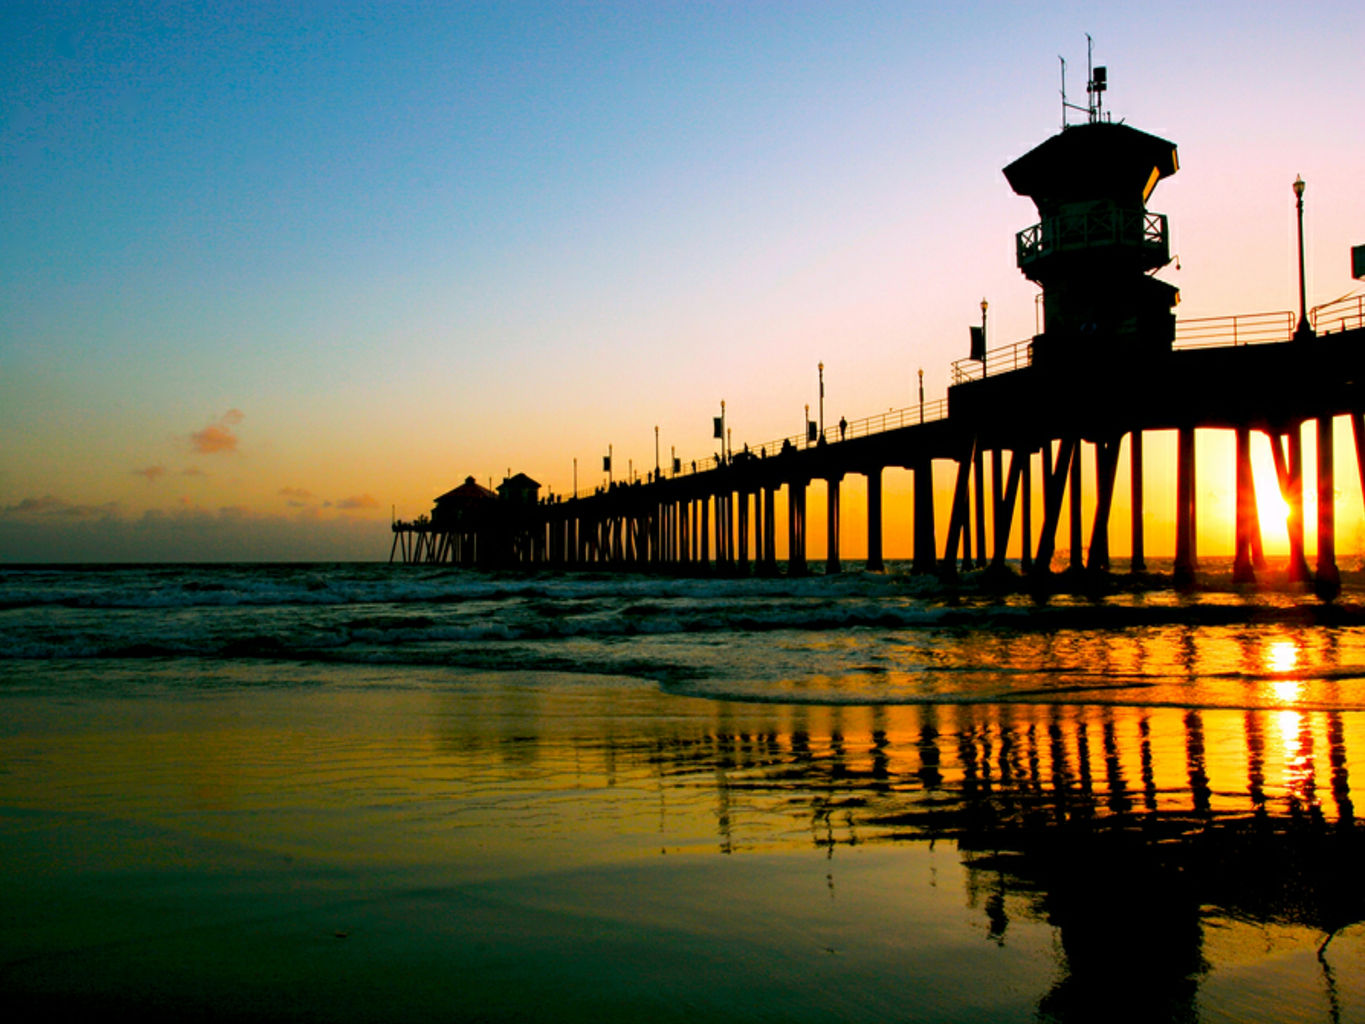 Huntington beach and indian casino location form to report gambling winnings